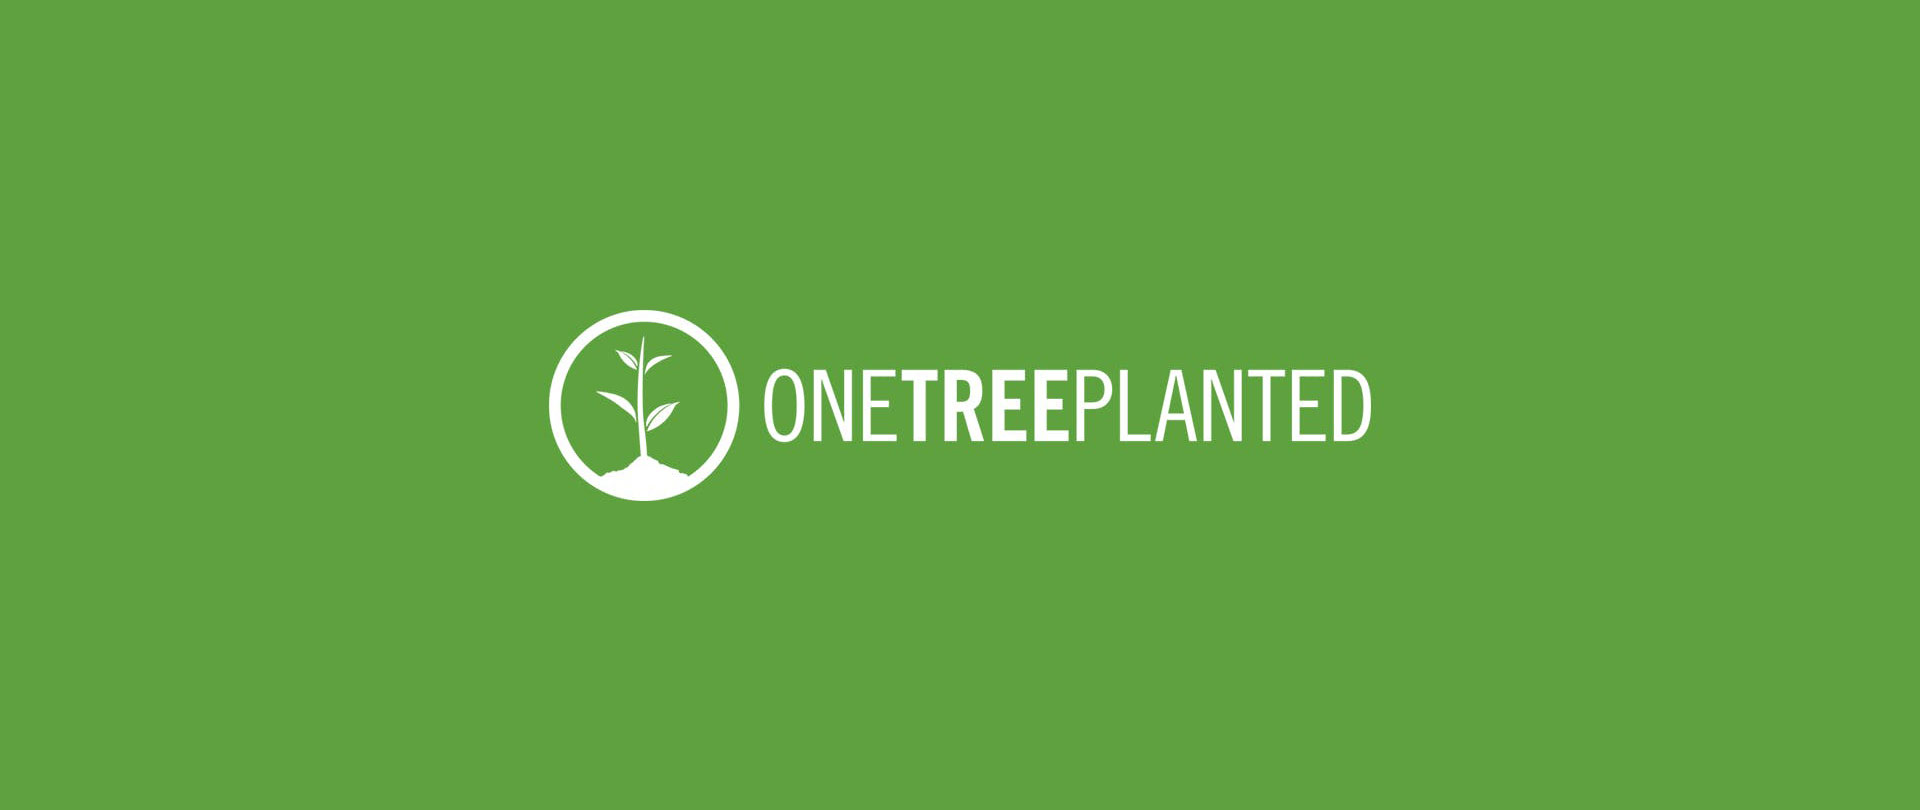 SCP Hotel donates to One Tree Planted